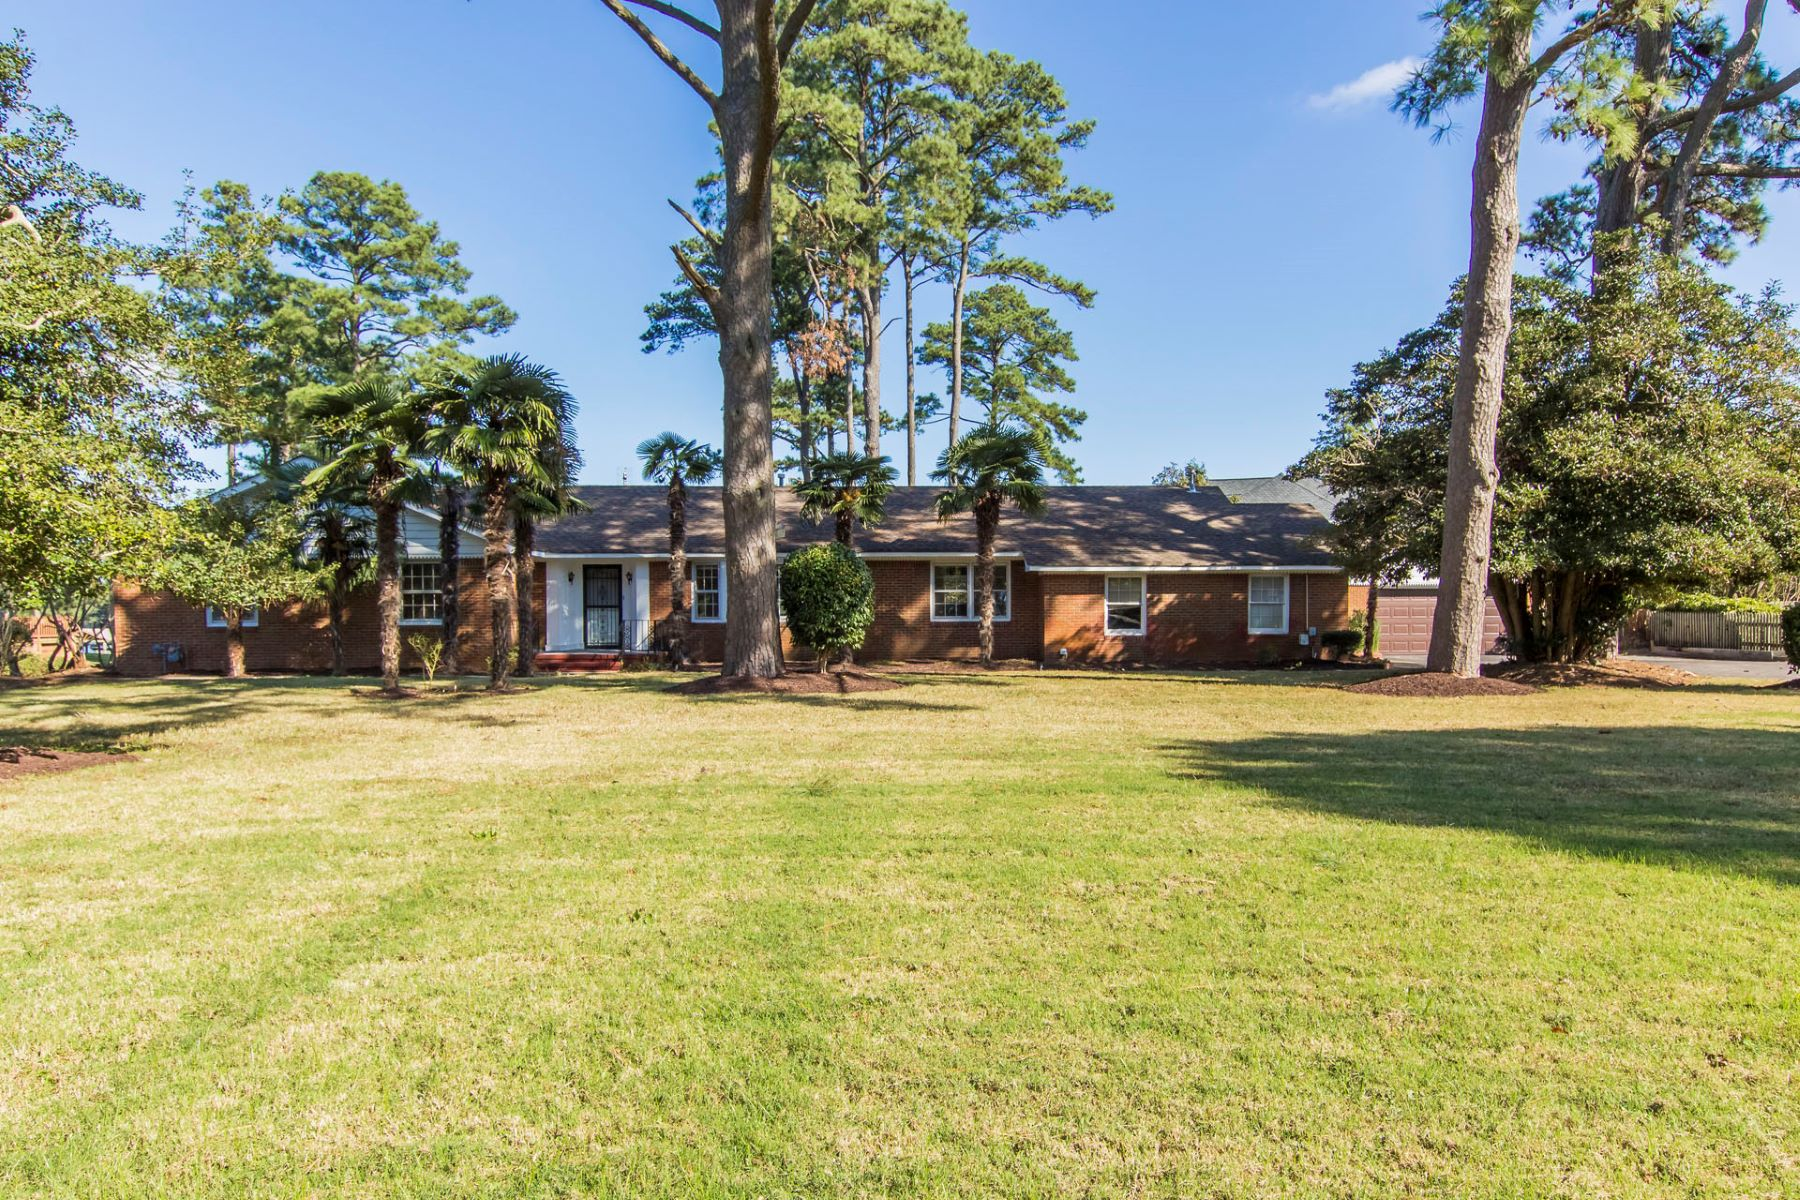 Single Family Home for Sale at Witchduck 4044 N Witchduck Rd Virginia Beach, Virginia 23455 United States